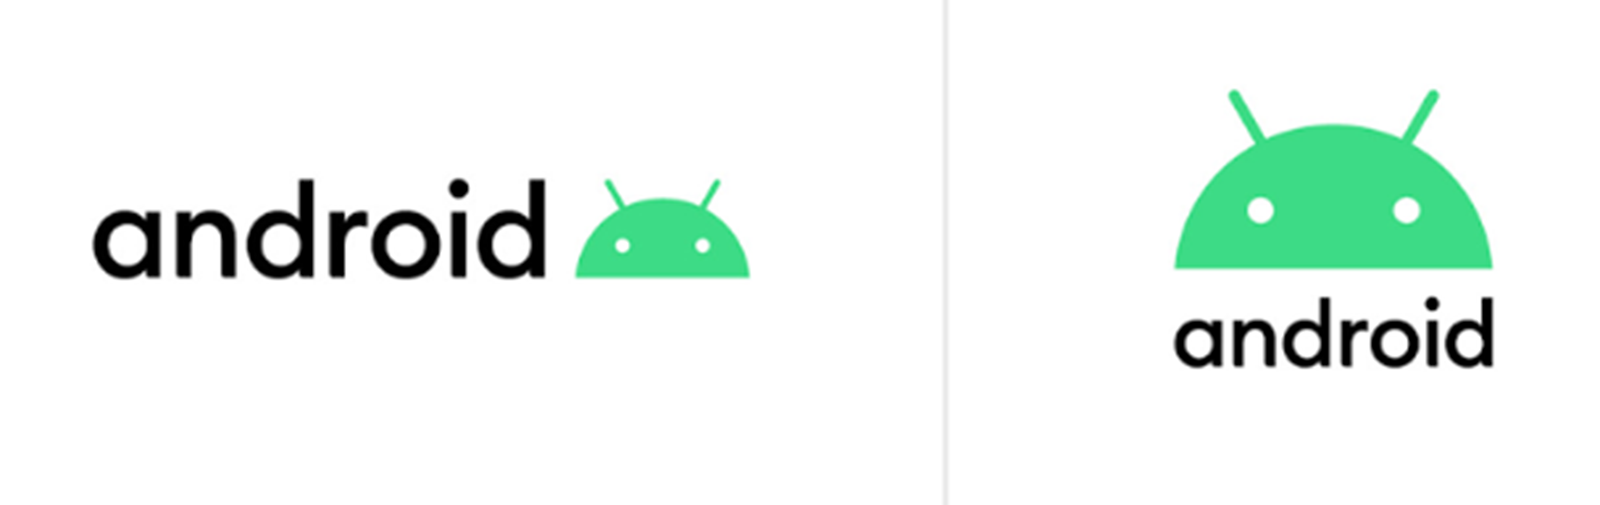 Android Quits on Q